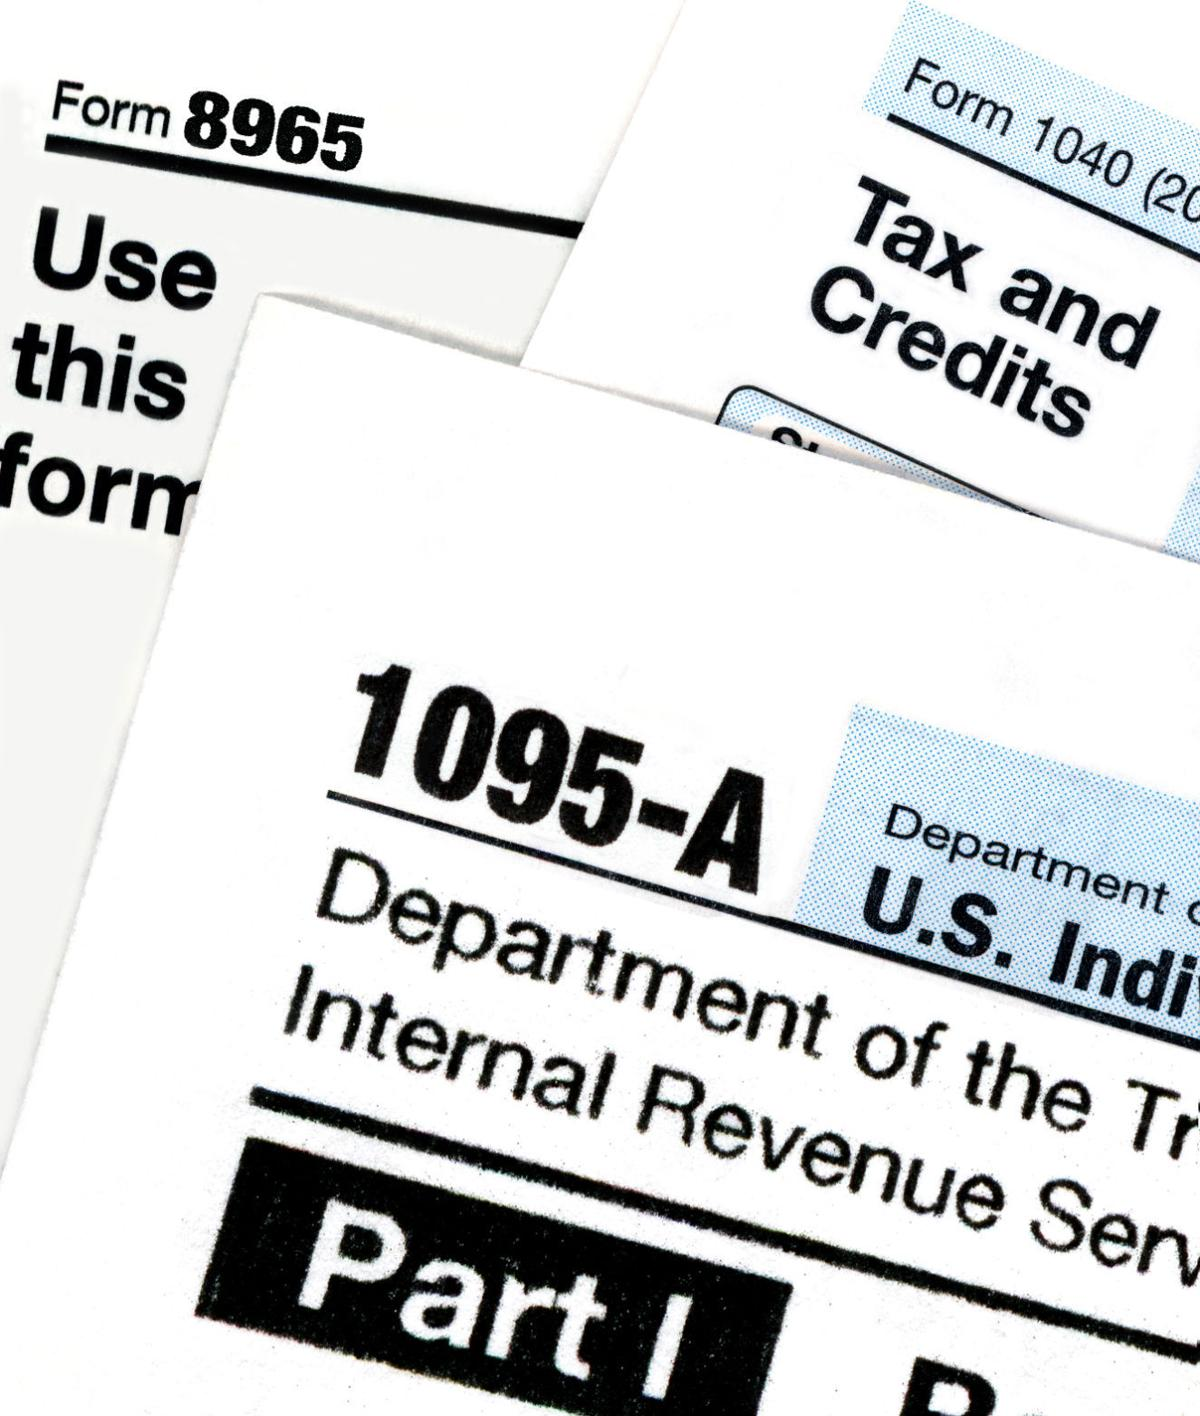 New tax form confusion eased by professionals | Local News ...